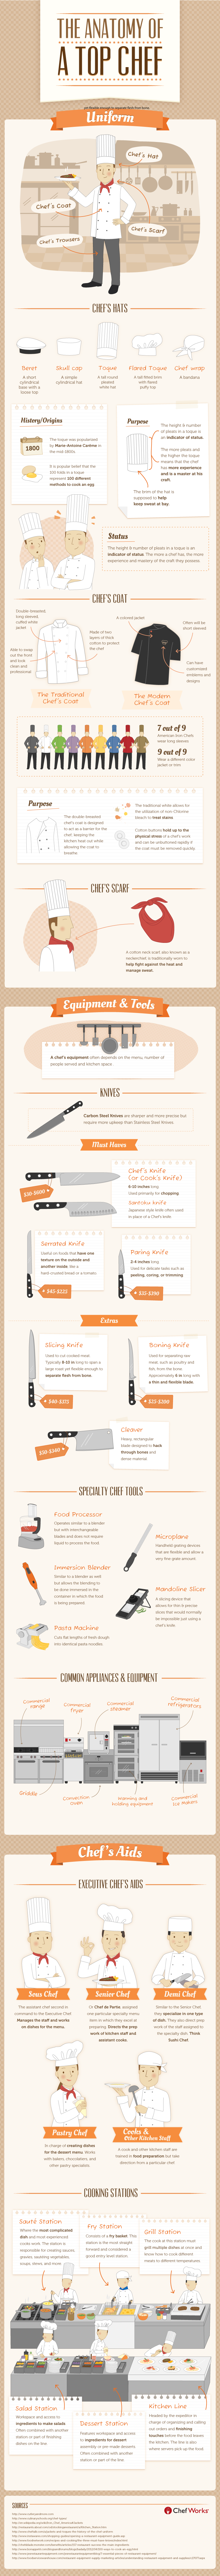 The Anatomy of A Top Chef Infographic